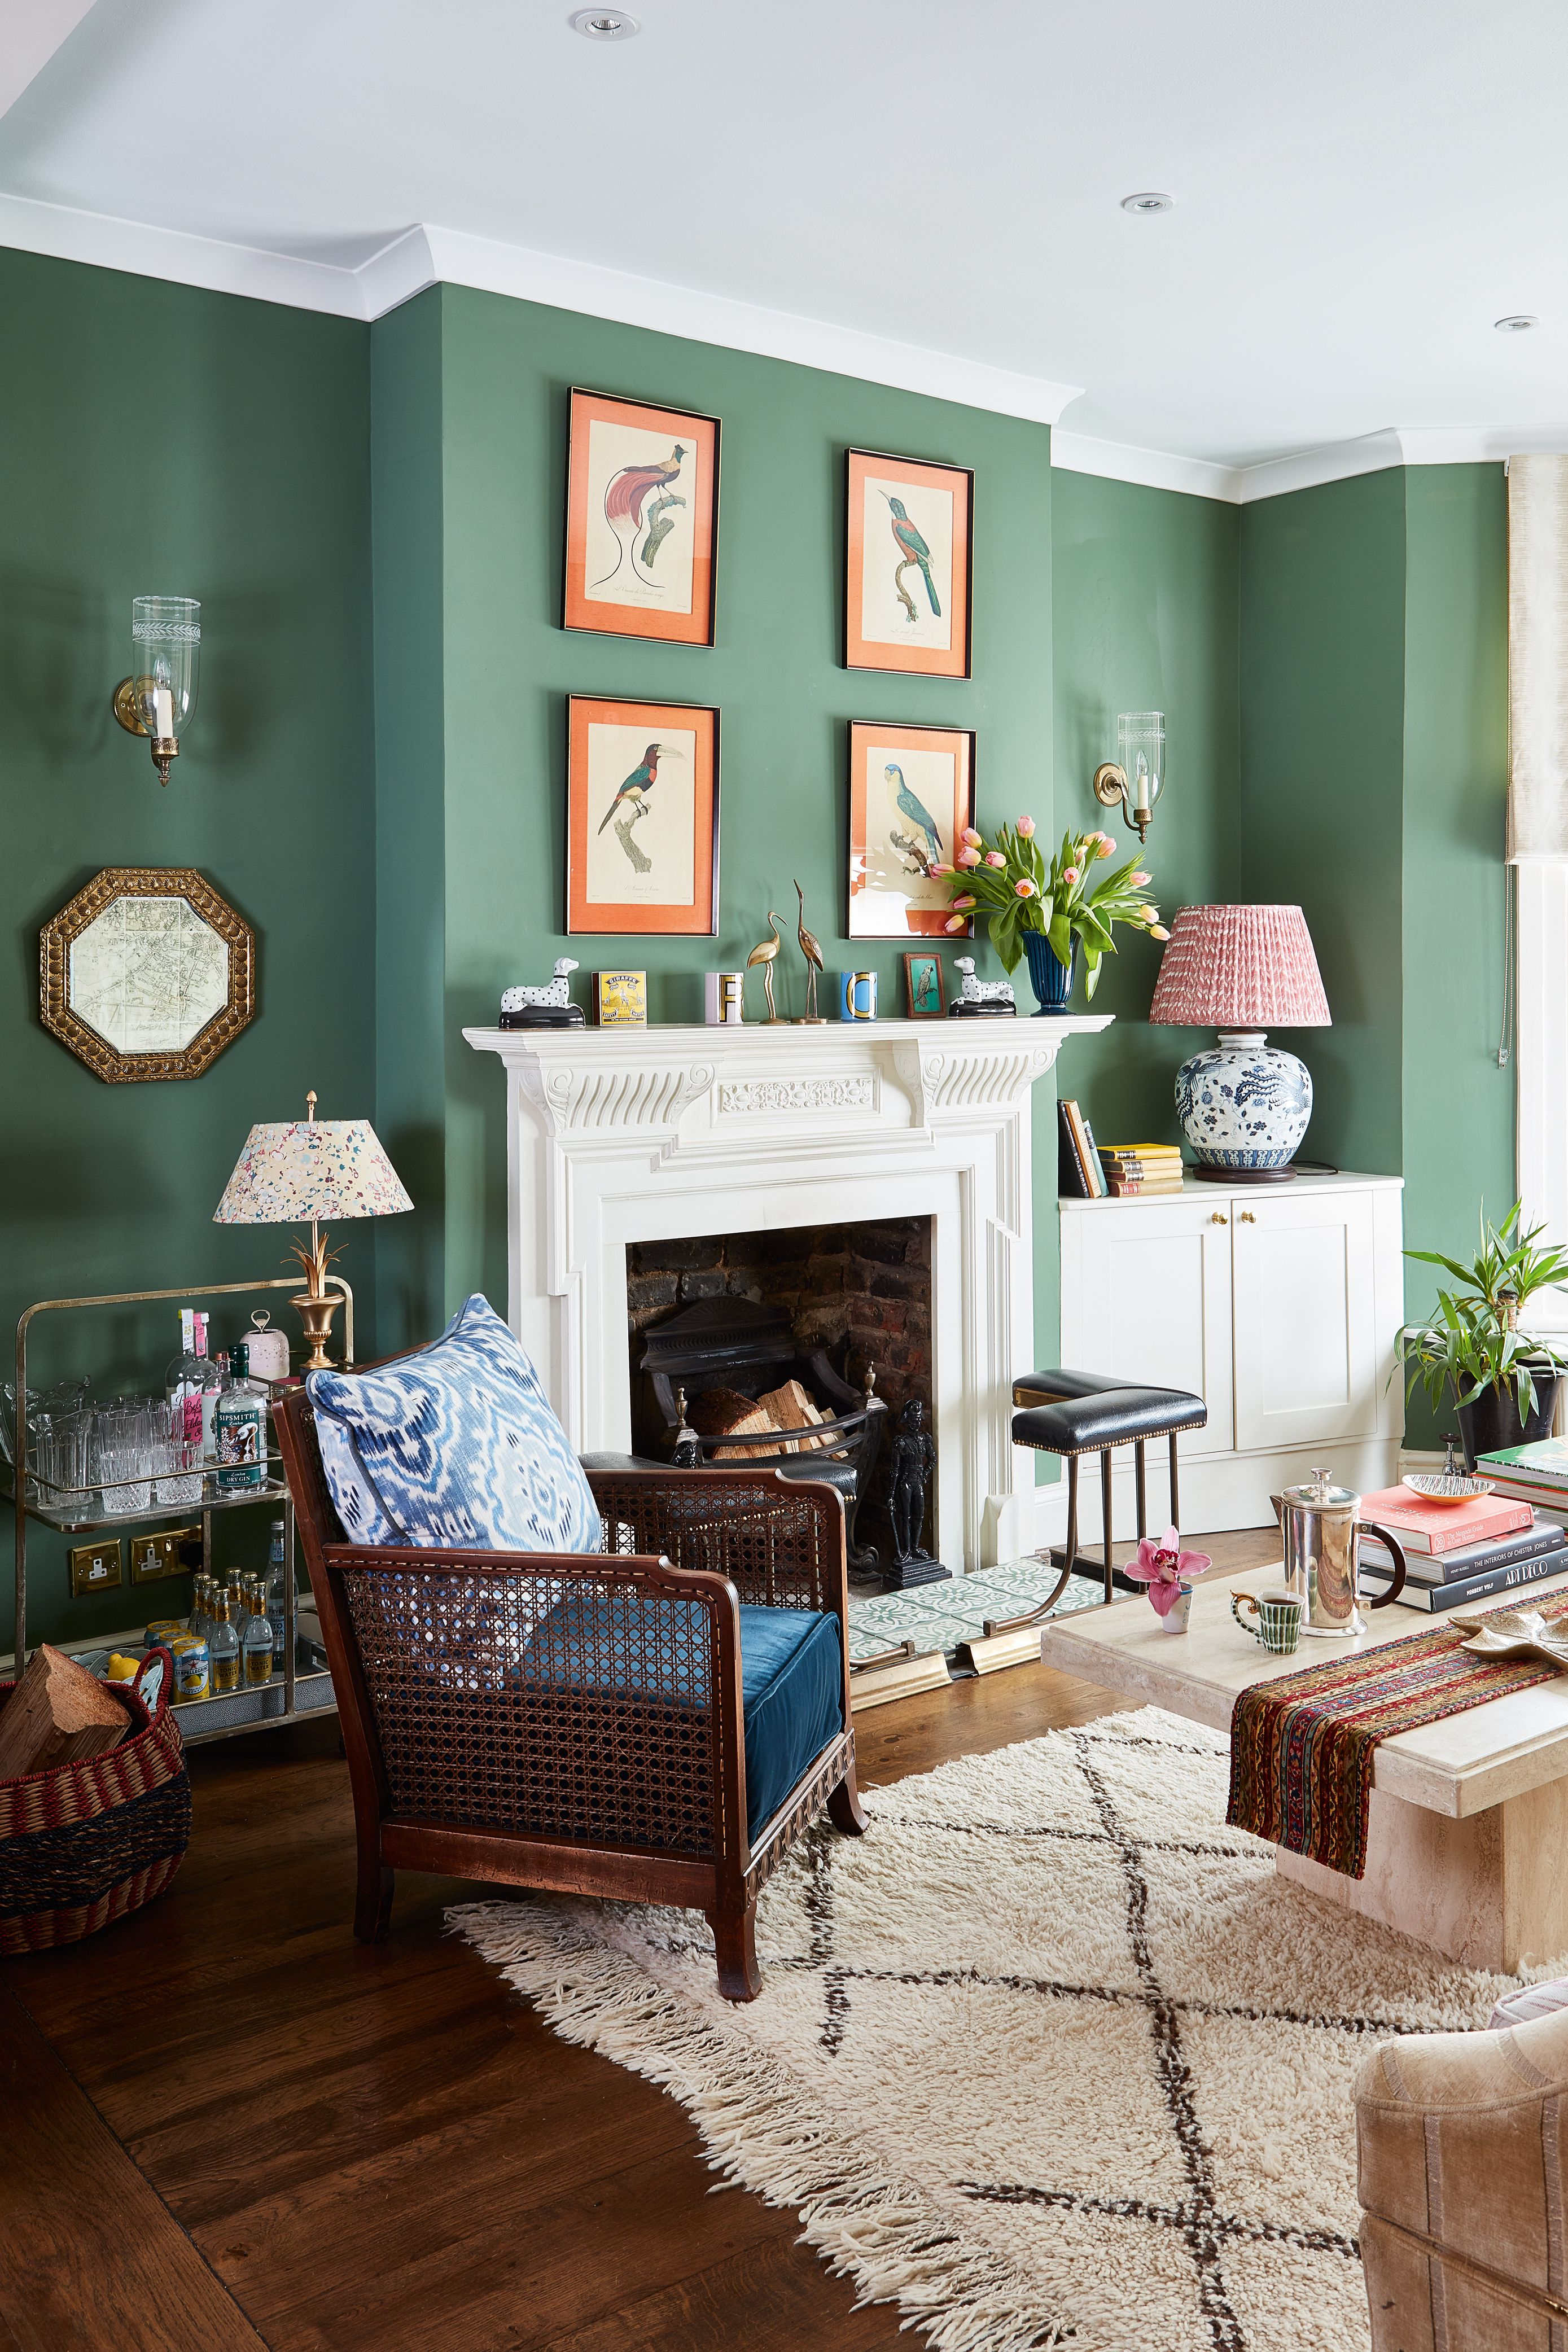 Real Home A Stylish Transformation Of A Late Victorian Terrace Green Walls Living Room Living Room Green Home Renovation Costs